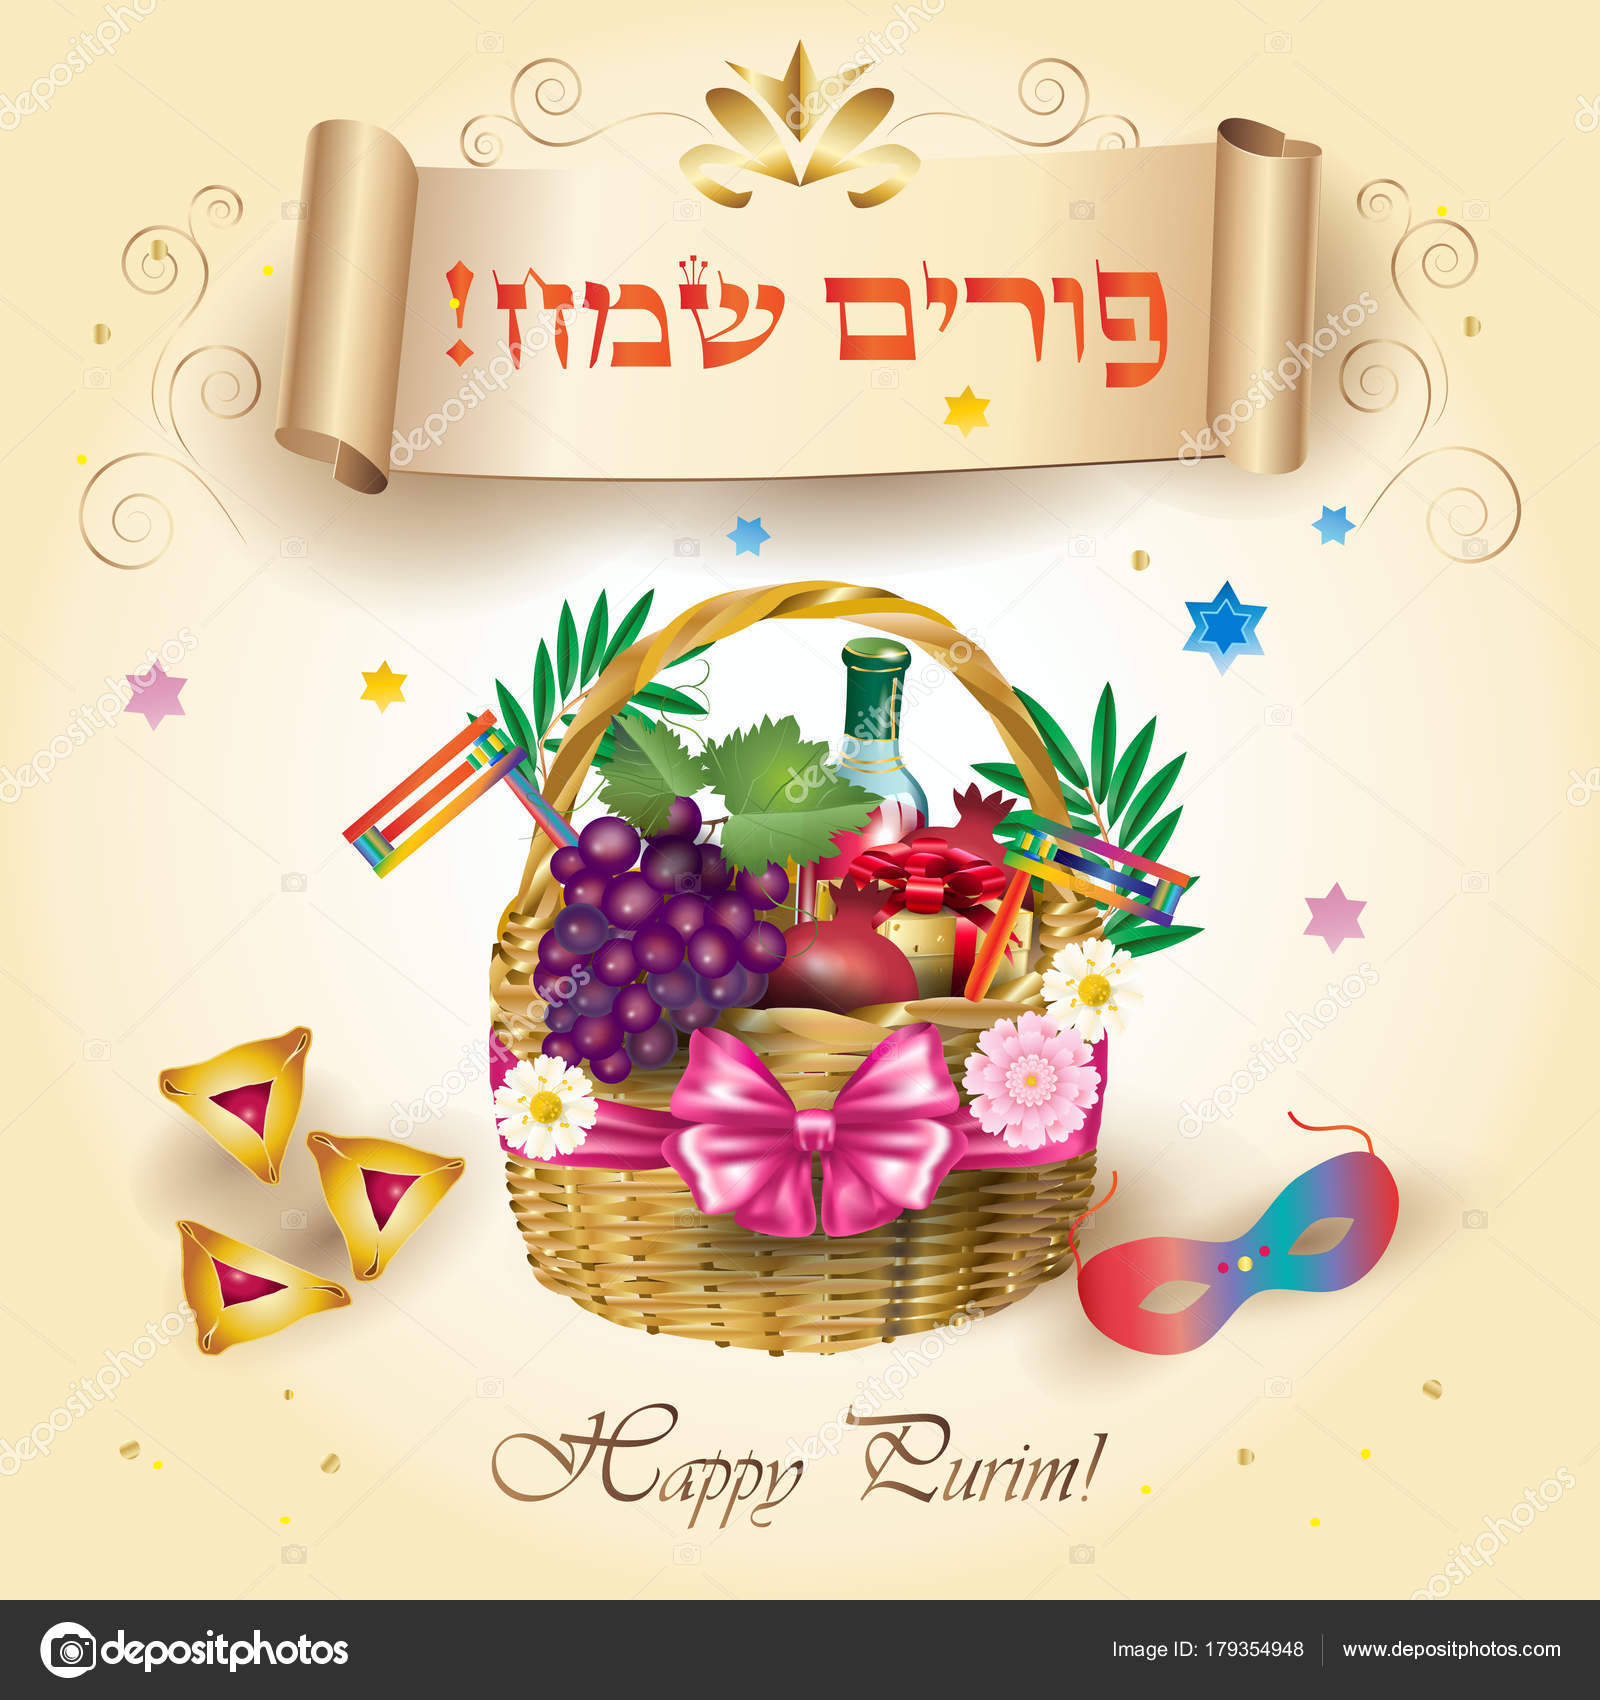 Happy Purim Jewish Holiday Greeting Card Traditional Purim Symbols